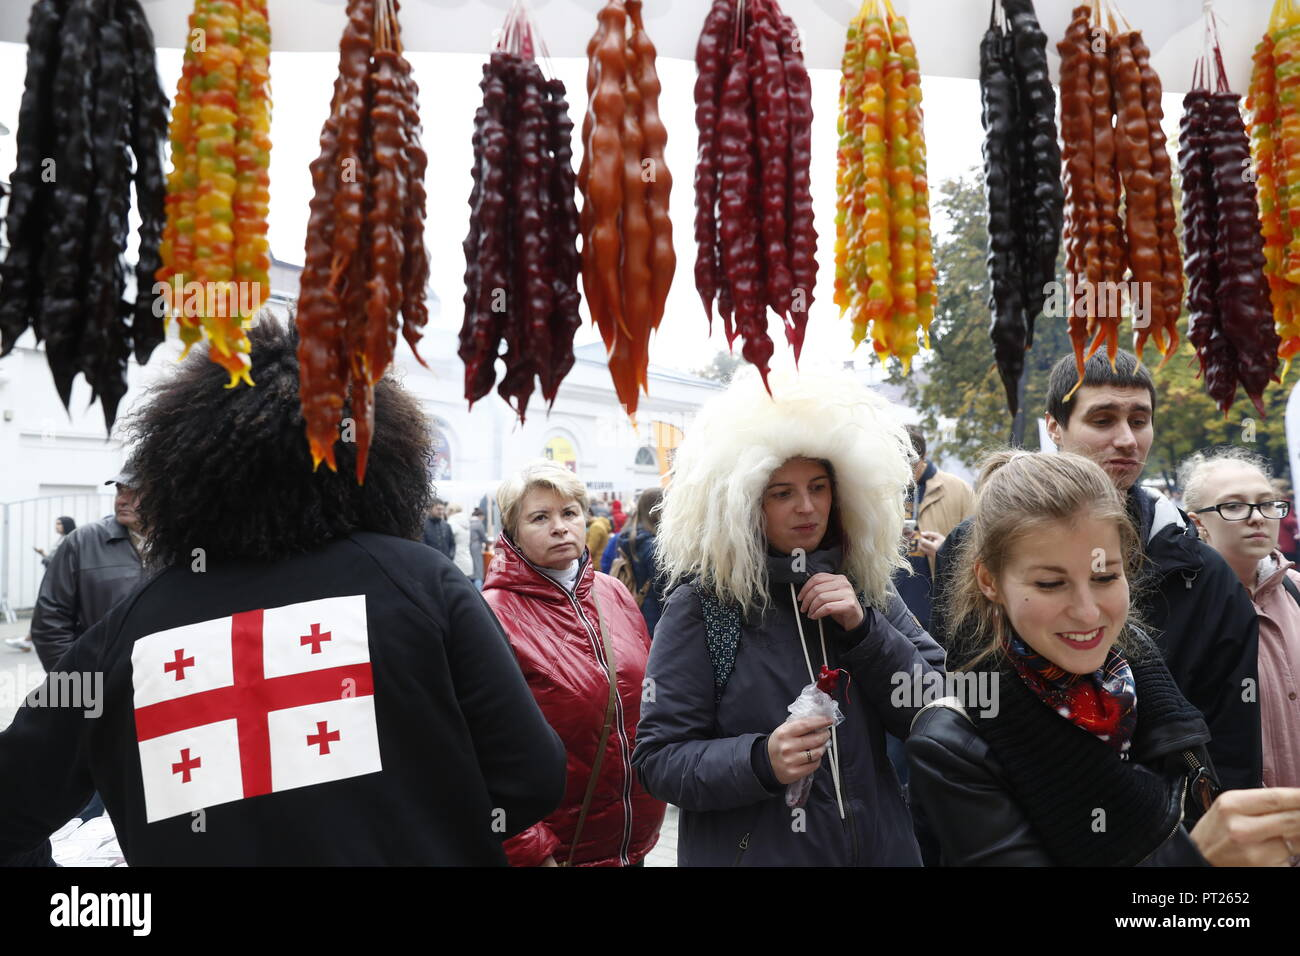 Moscow, Russia. 6 October 2018. MOSCOW, RUSSIA - OCTOBER 6, 2018: Annual 2018 Tbilisoba Festival of Georgian Culture at the Moscow Hermitage Garden. Artyom Geodakyan/TASS EDITORIAL USE ONLY; NO COMMERCIAL USE; NO ADVERTISING Credit: ITAR-TASS News Agency/Alamy Live News Stock Photo